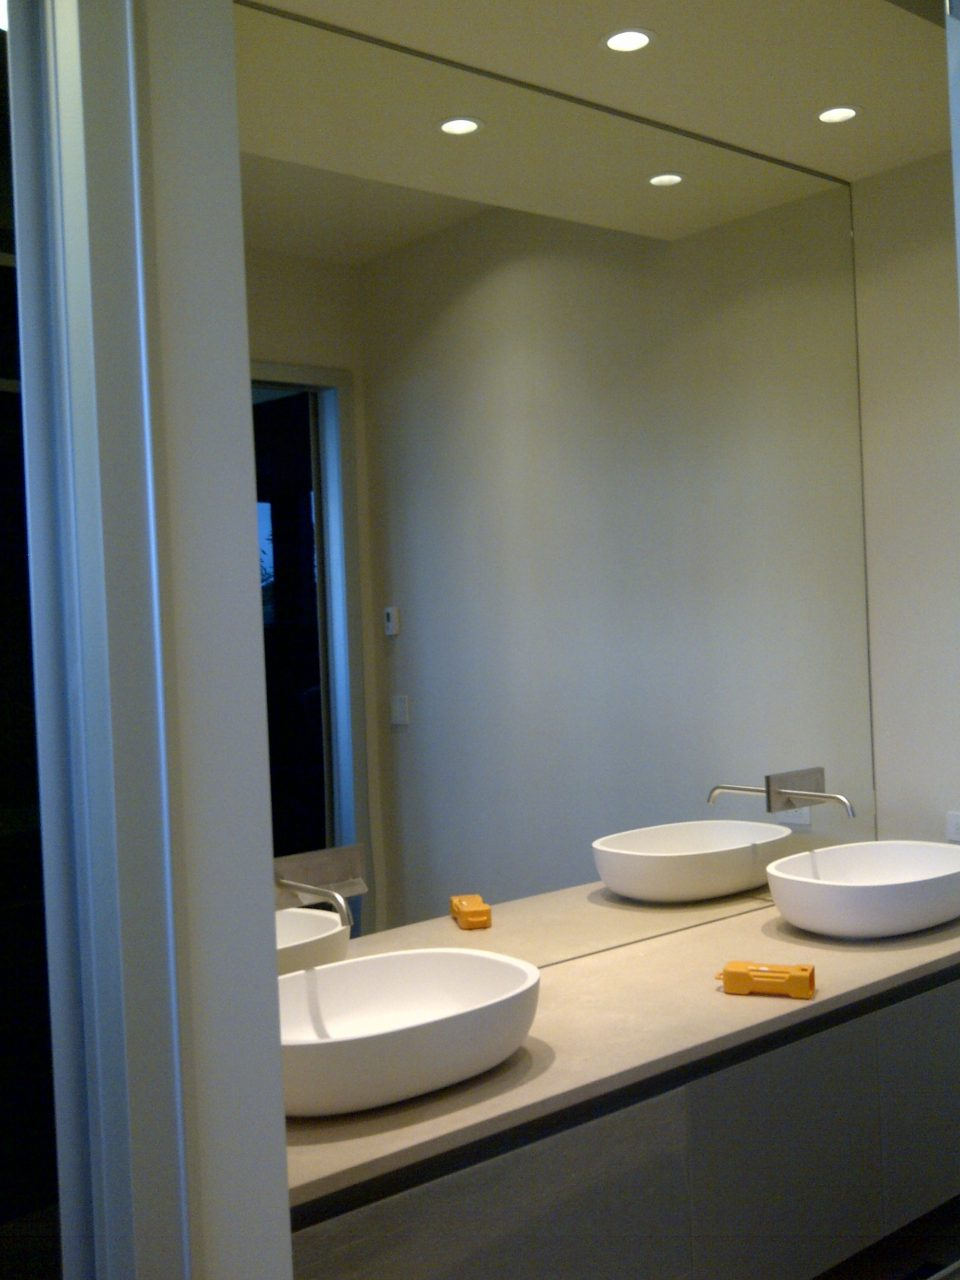 Bathroom Vanity Wall Mirrors Intended For Making 3 Sided Framed